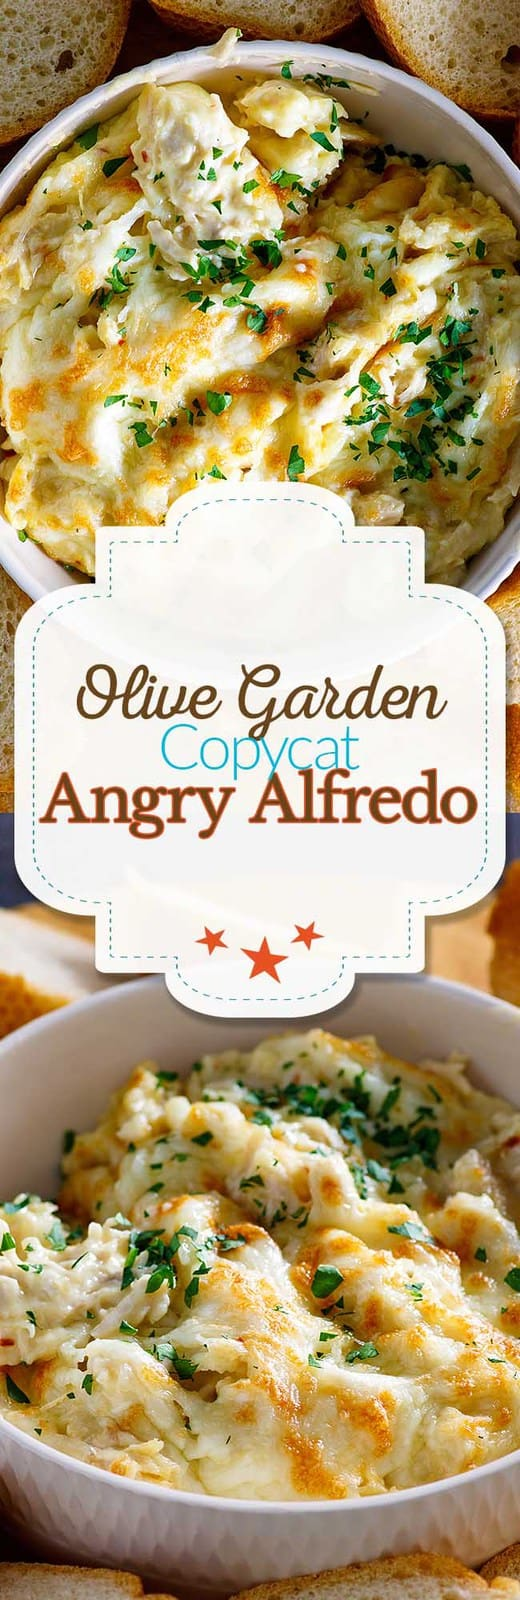 Recate the Olive Garden Angry Alfredo Dipping Sauce at home. Filled with chicken, and just the right amount of spice this recipe is a perfect appetizer or addition to your party. #appetizer #copycat #copycatrecipe #alfredo #olivegarden #keto #lowcarb